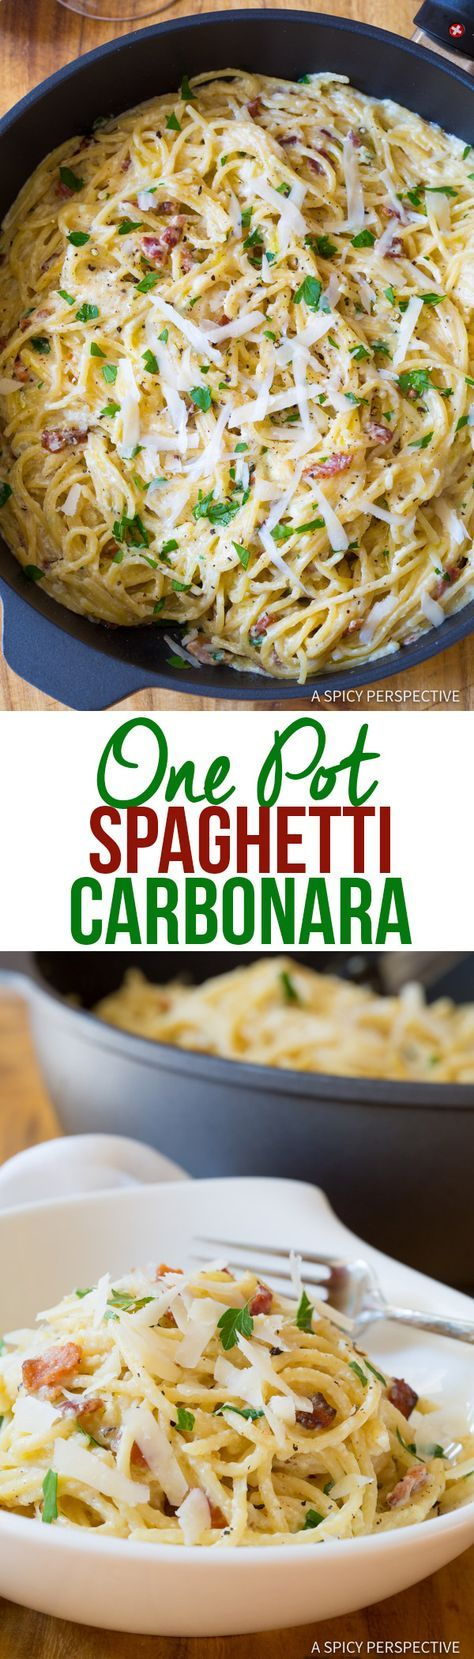 The Ultimate One Pot Spaghetti Carbonara | http://ASpicyPerspective.com